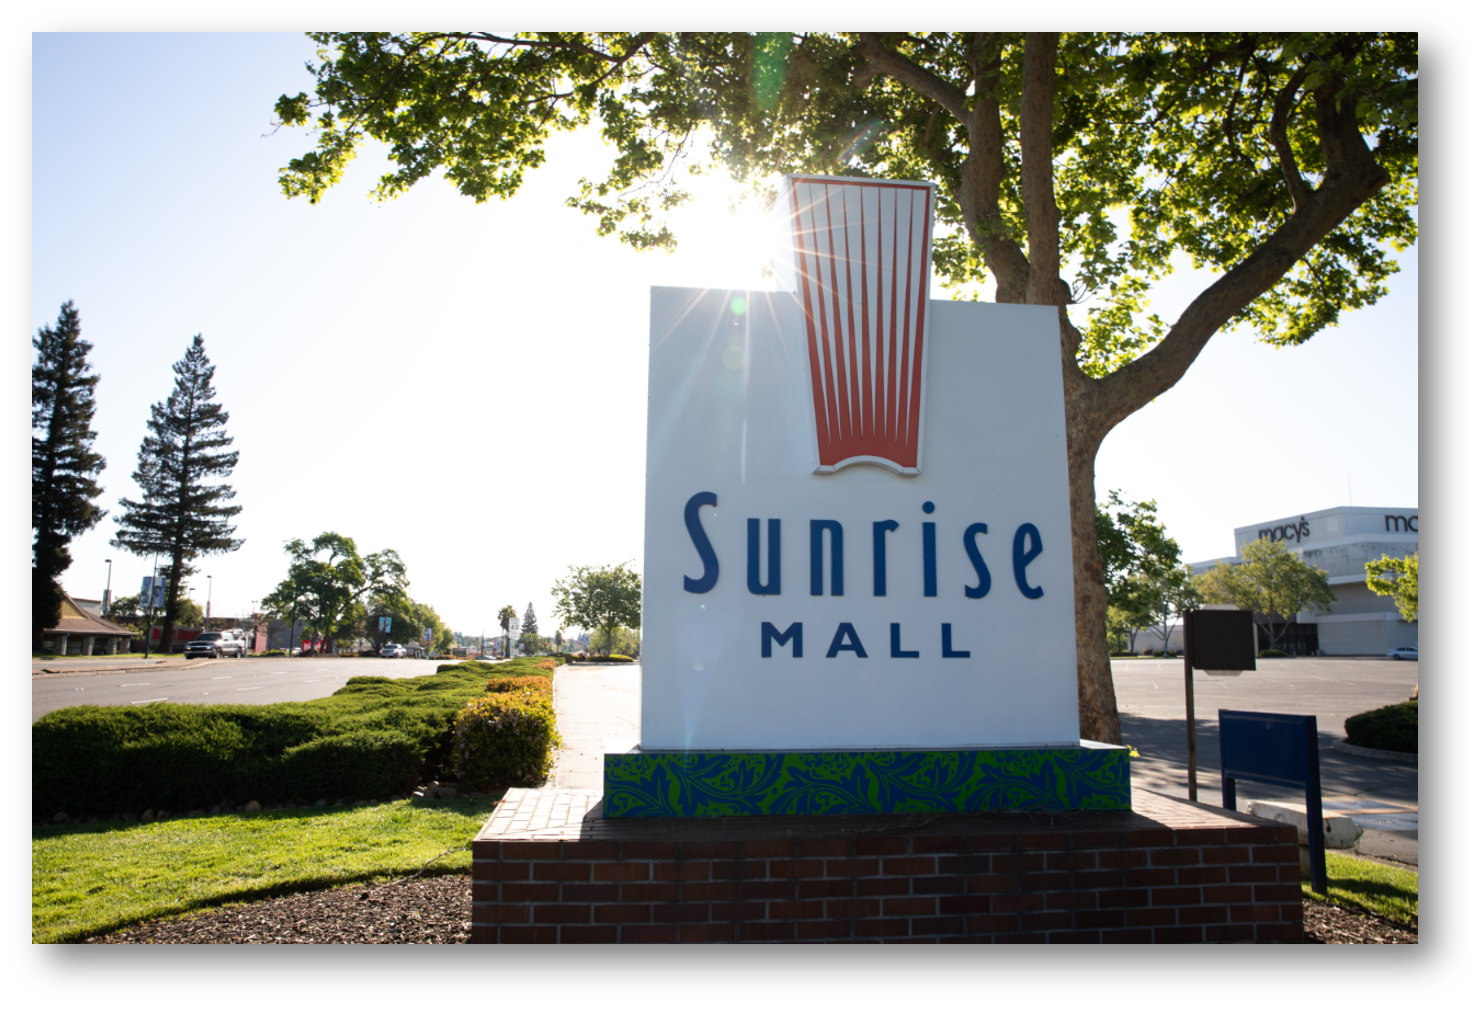 Sunrise Mall sign